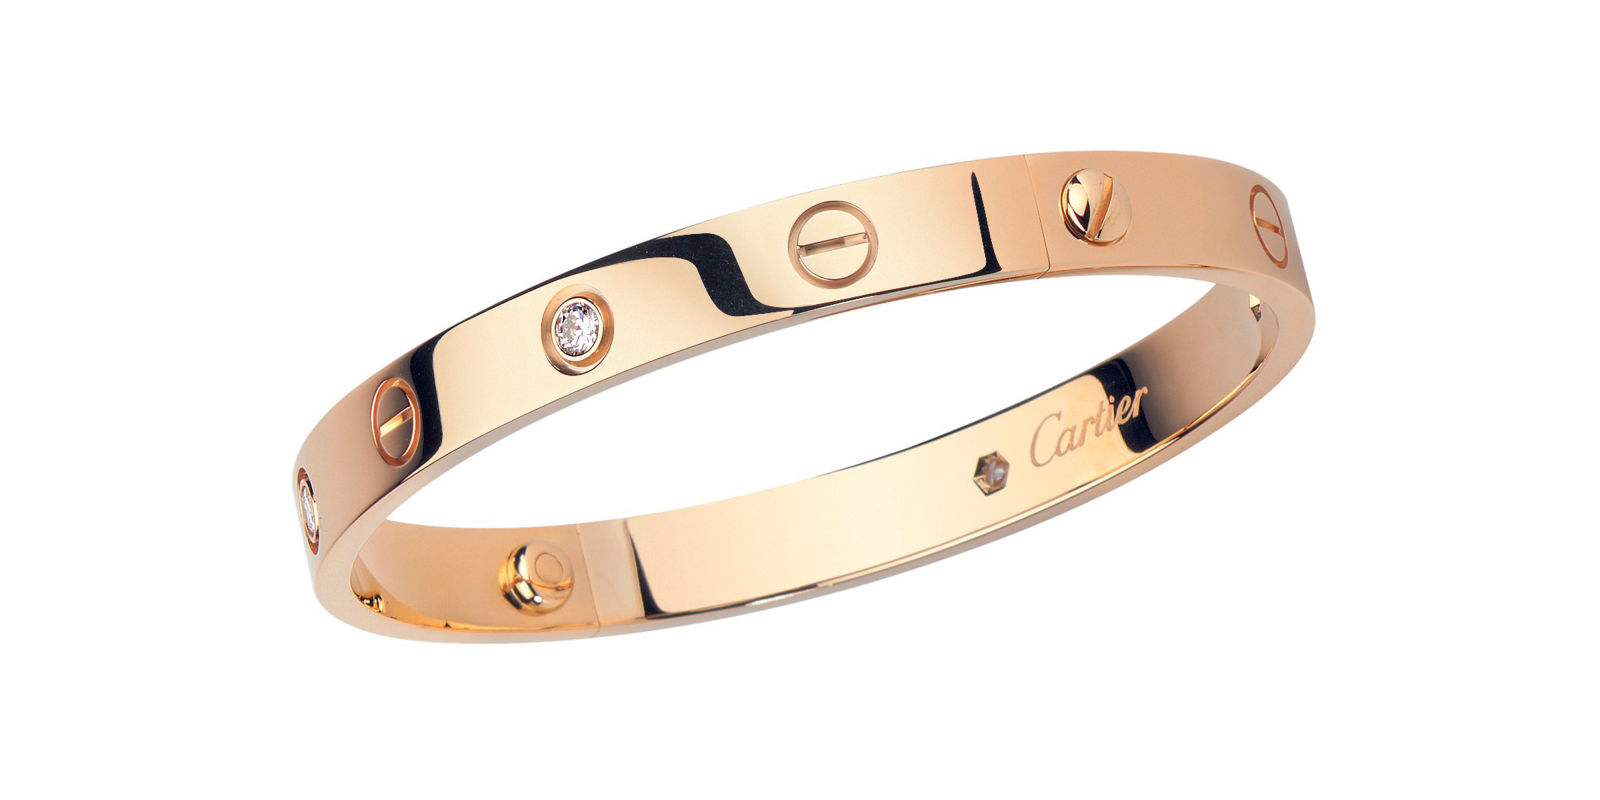 Who Wears the Cartier Love Bracelet?